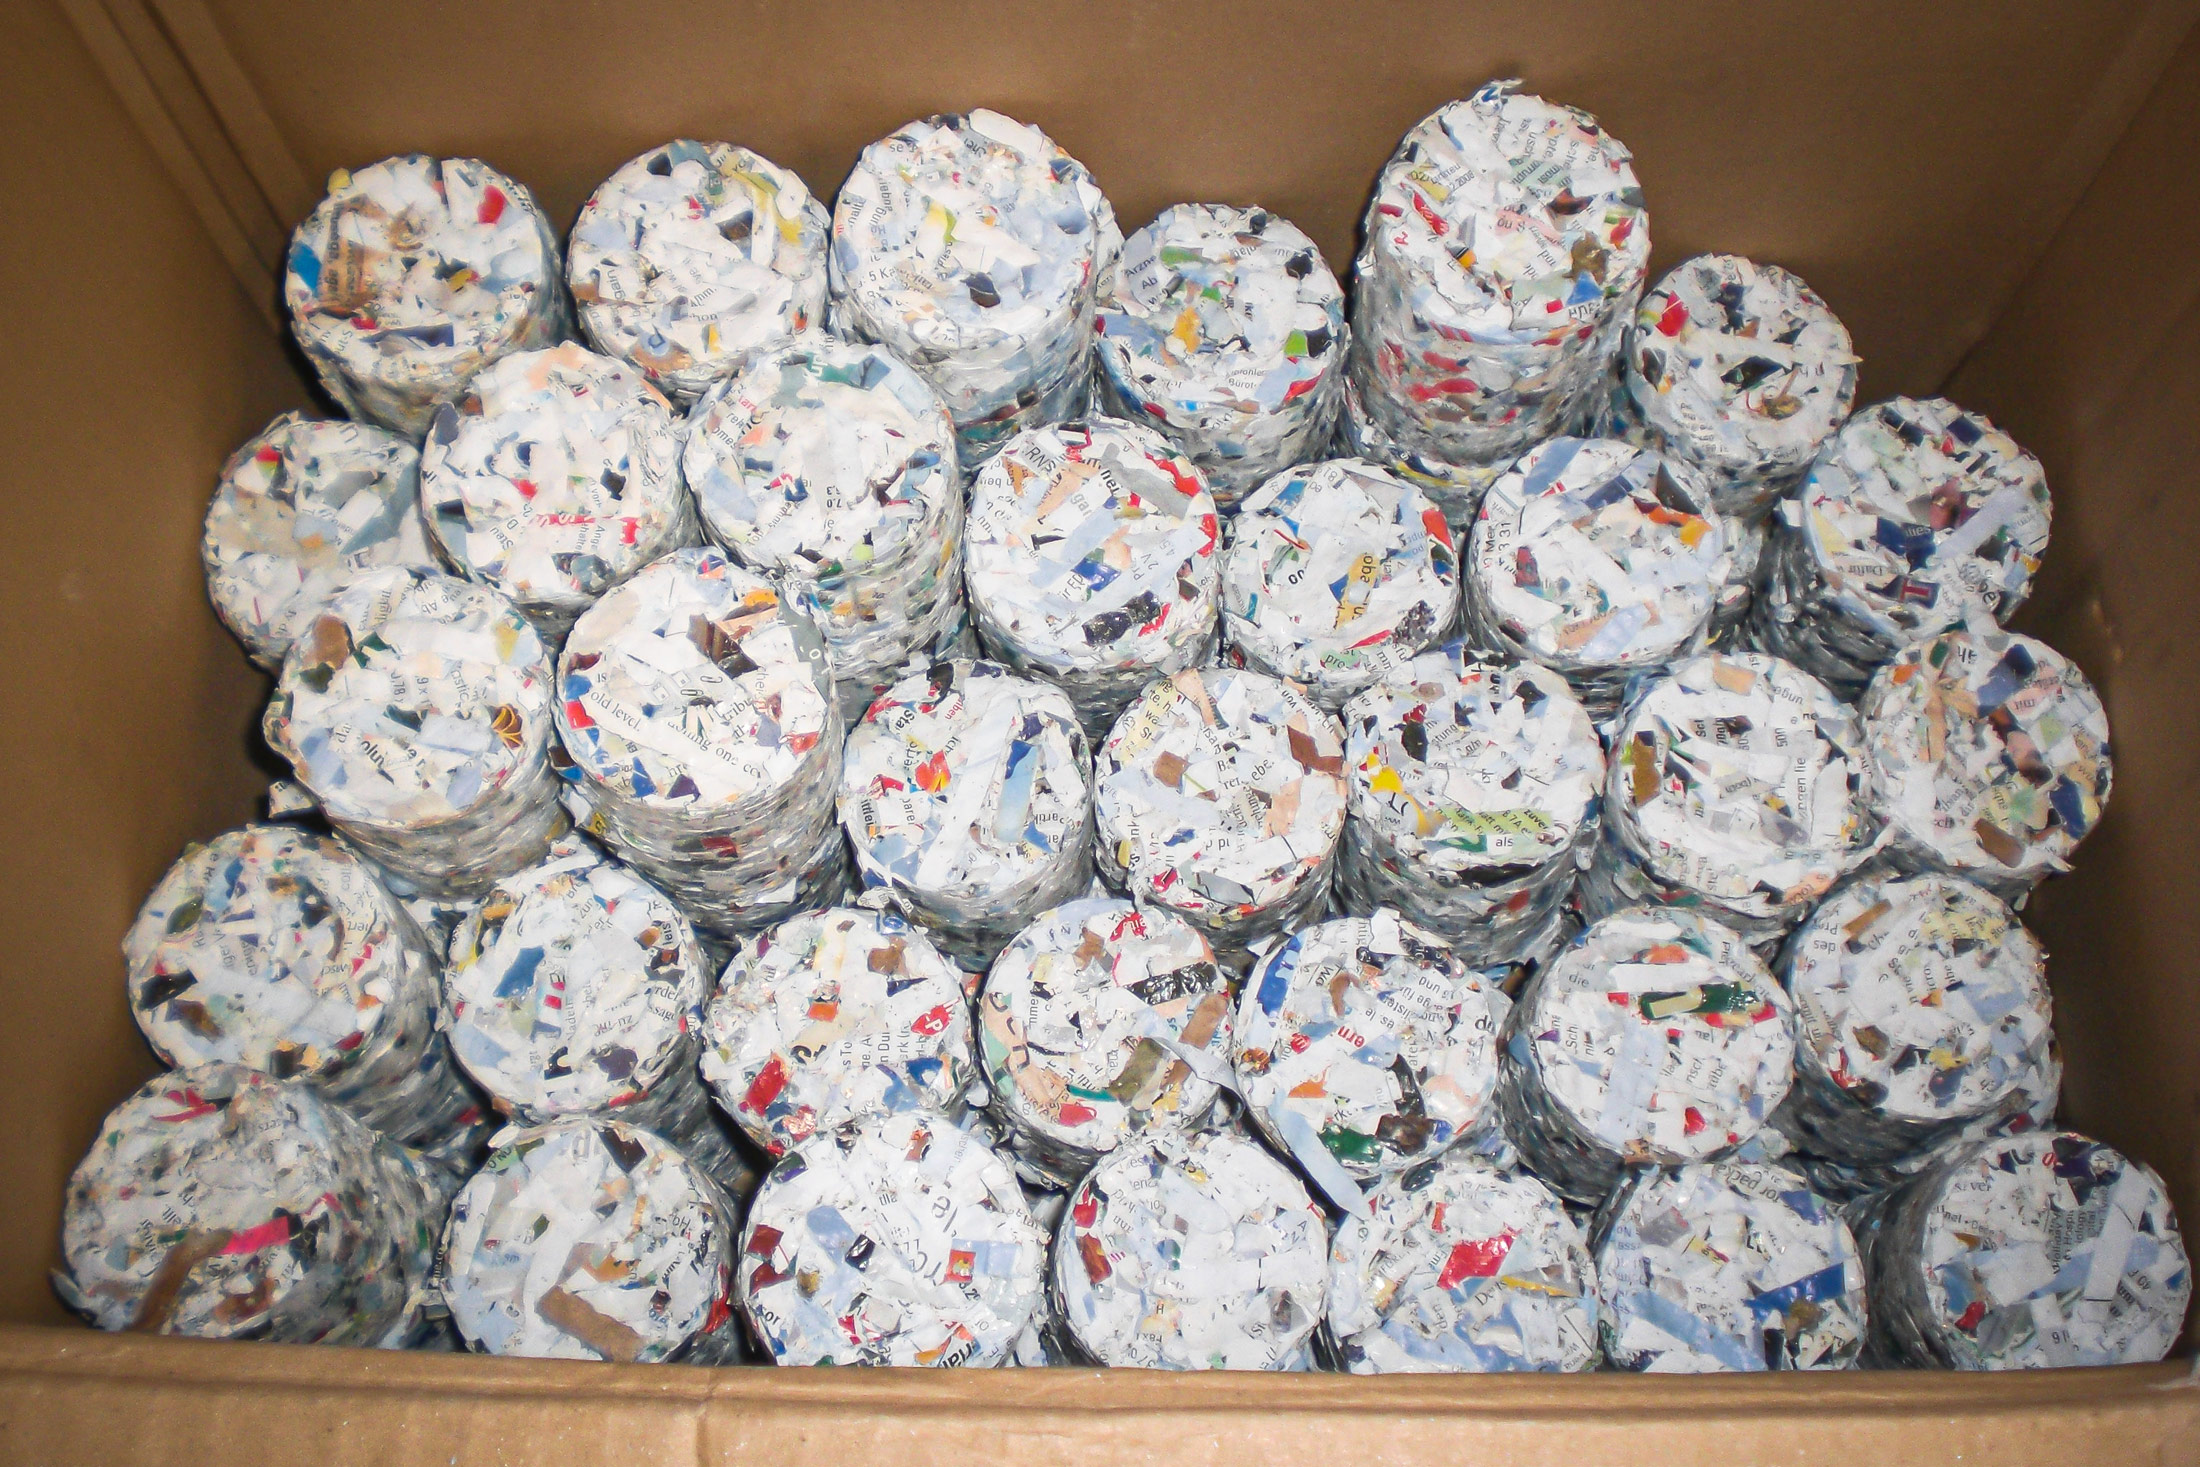 Briquettes from paper waste